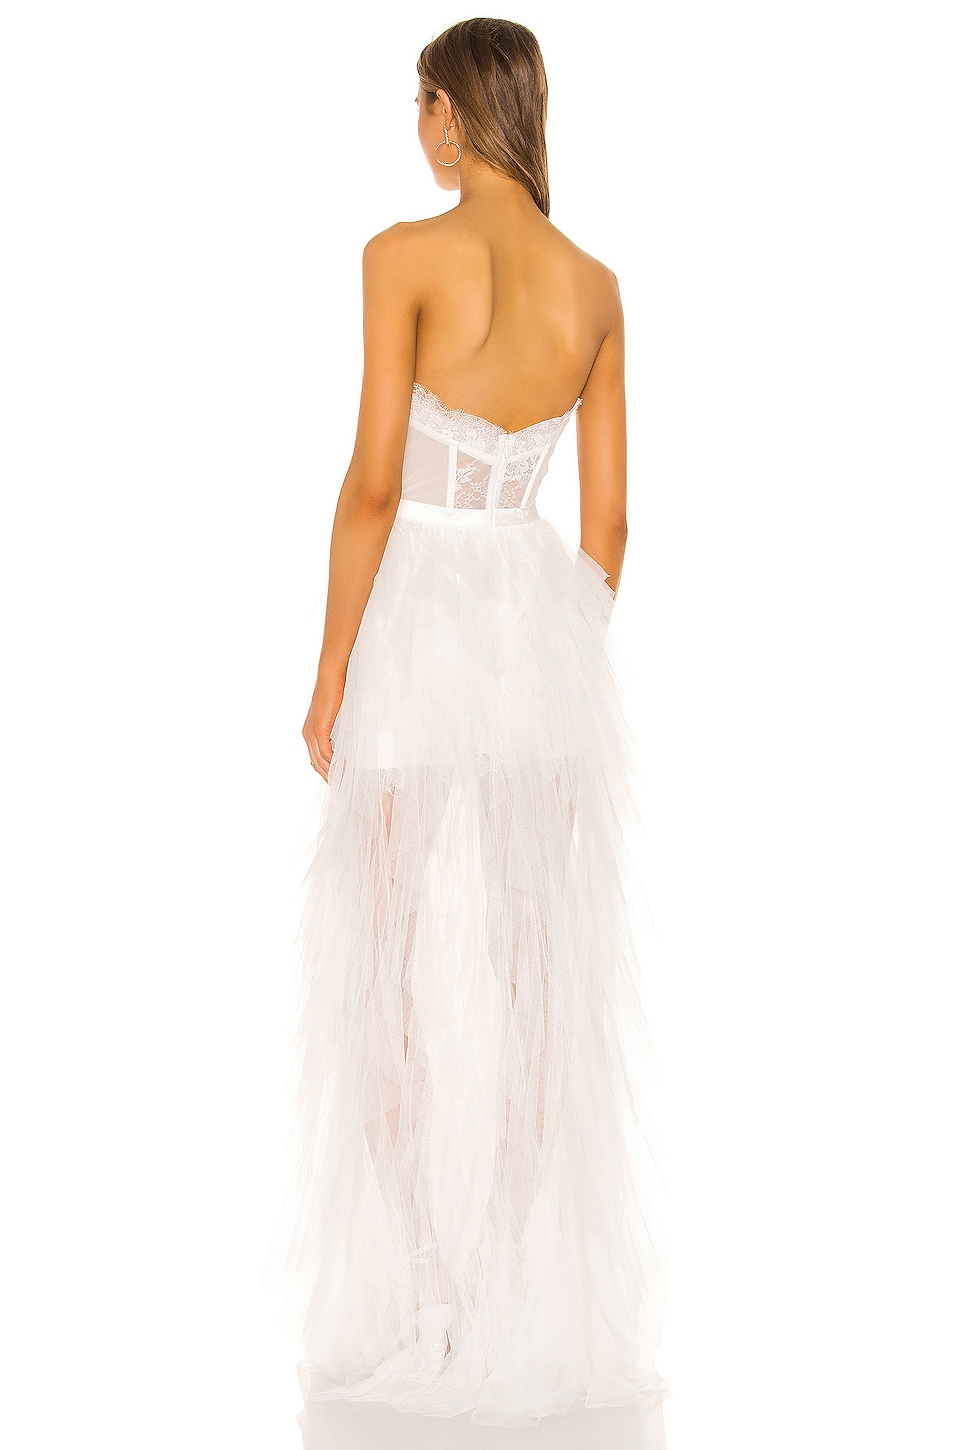 X REVOLVE Bustier Gown, view 3, click to view large image.